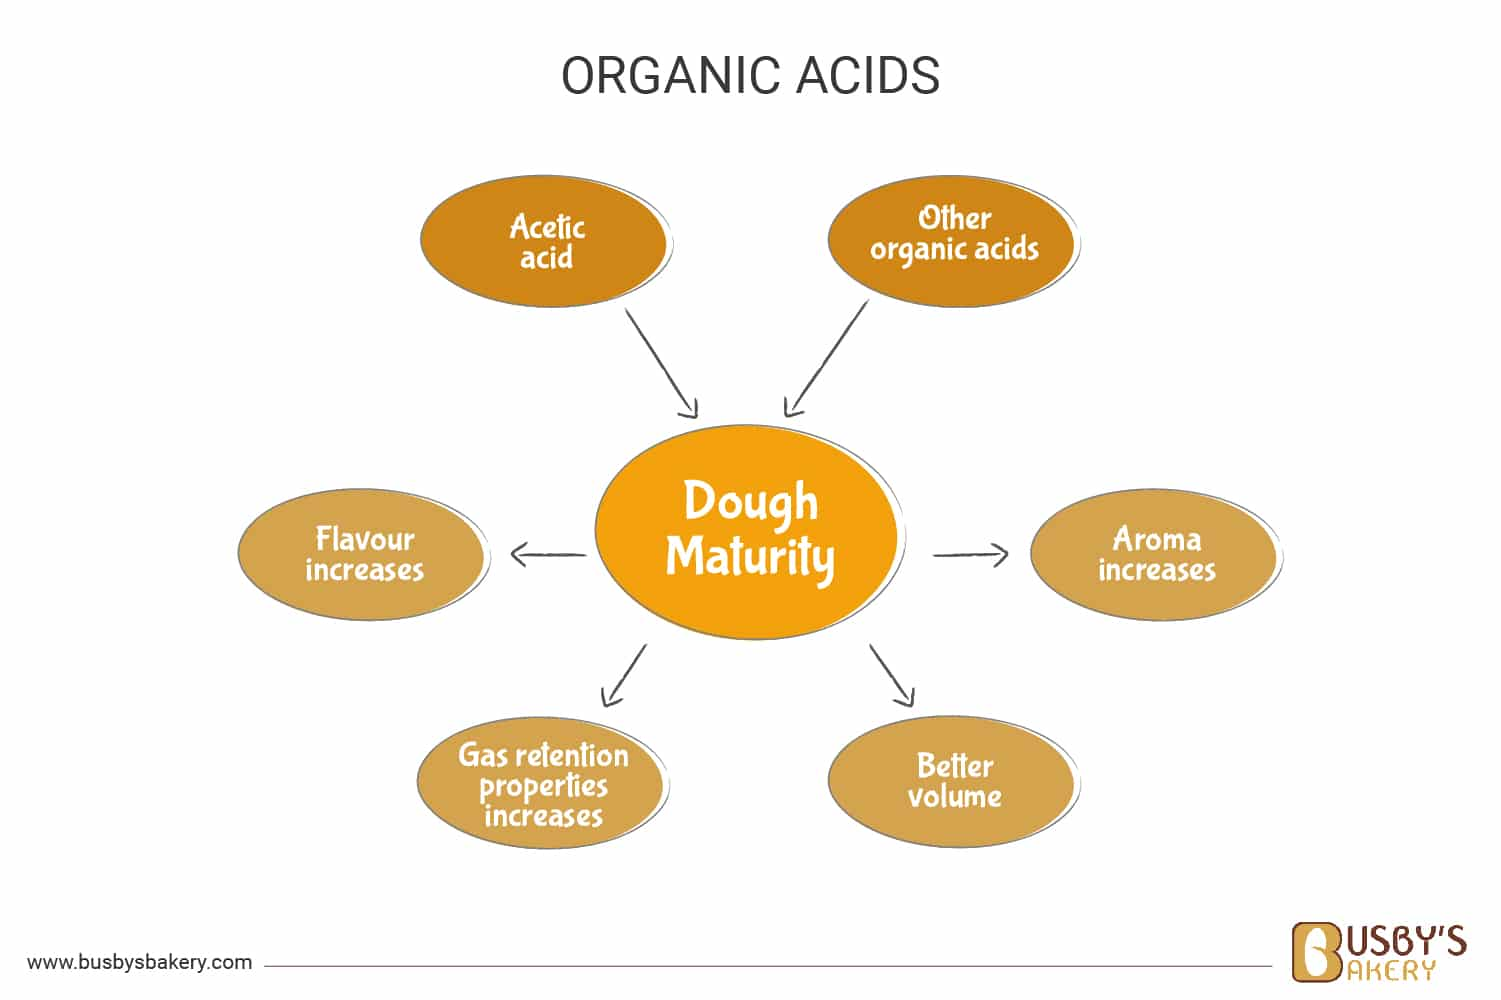 How organic acids improve the dough during fermentation